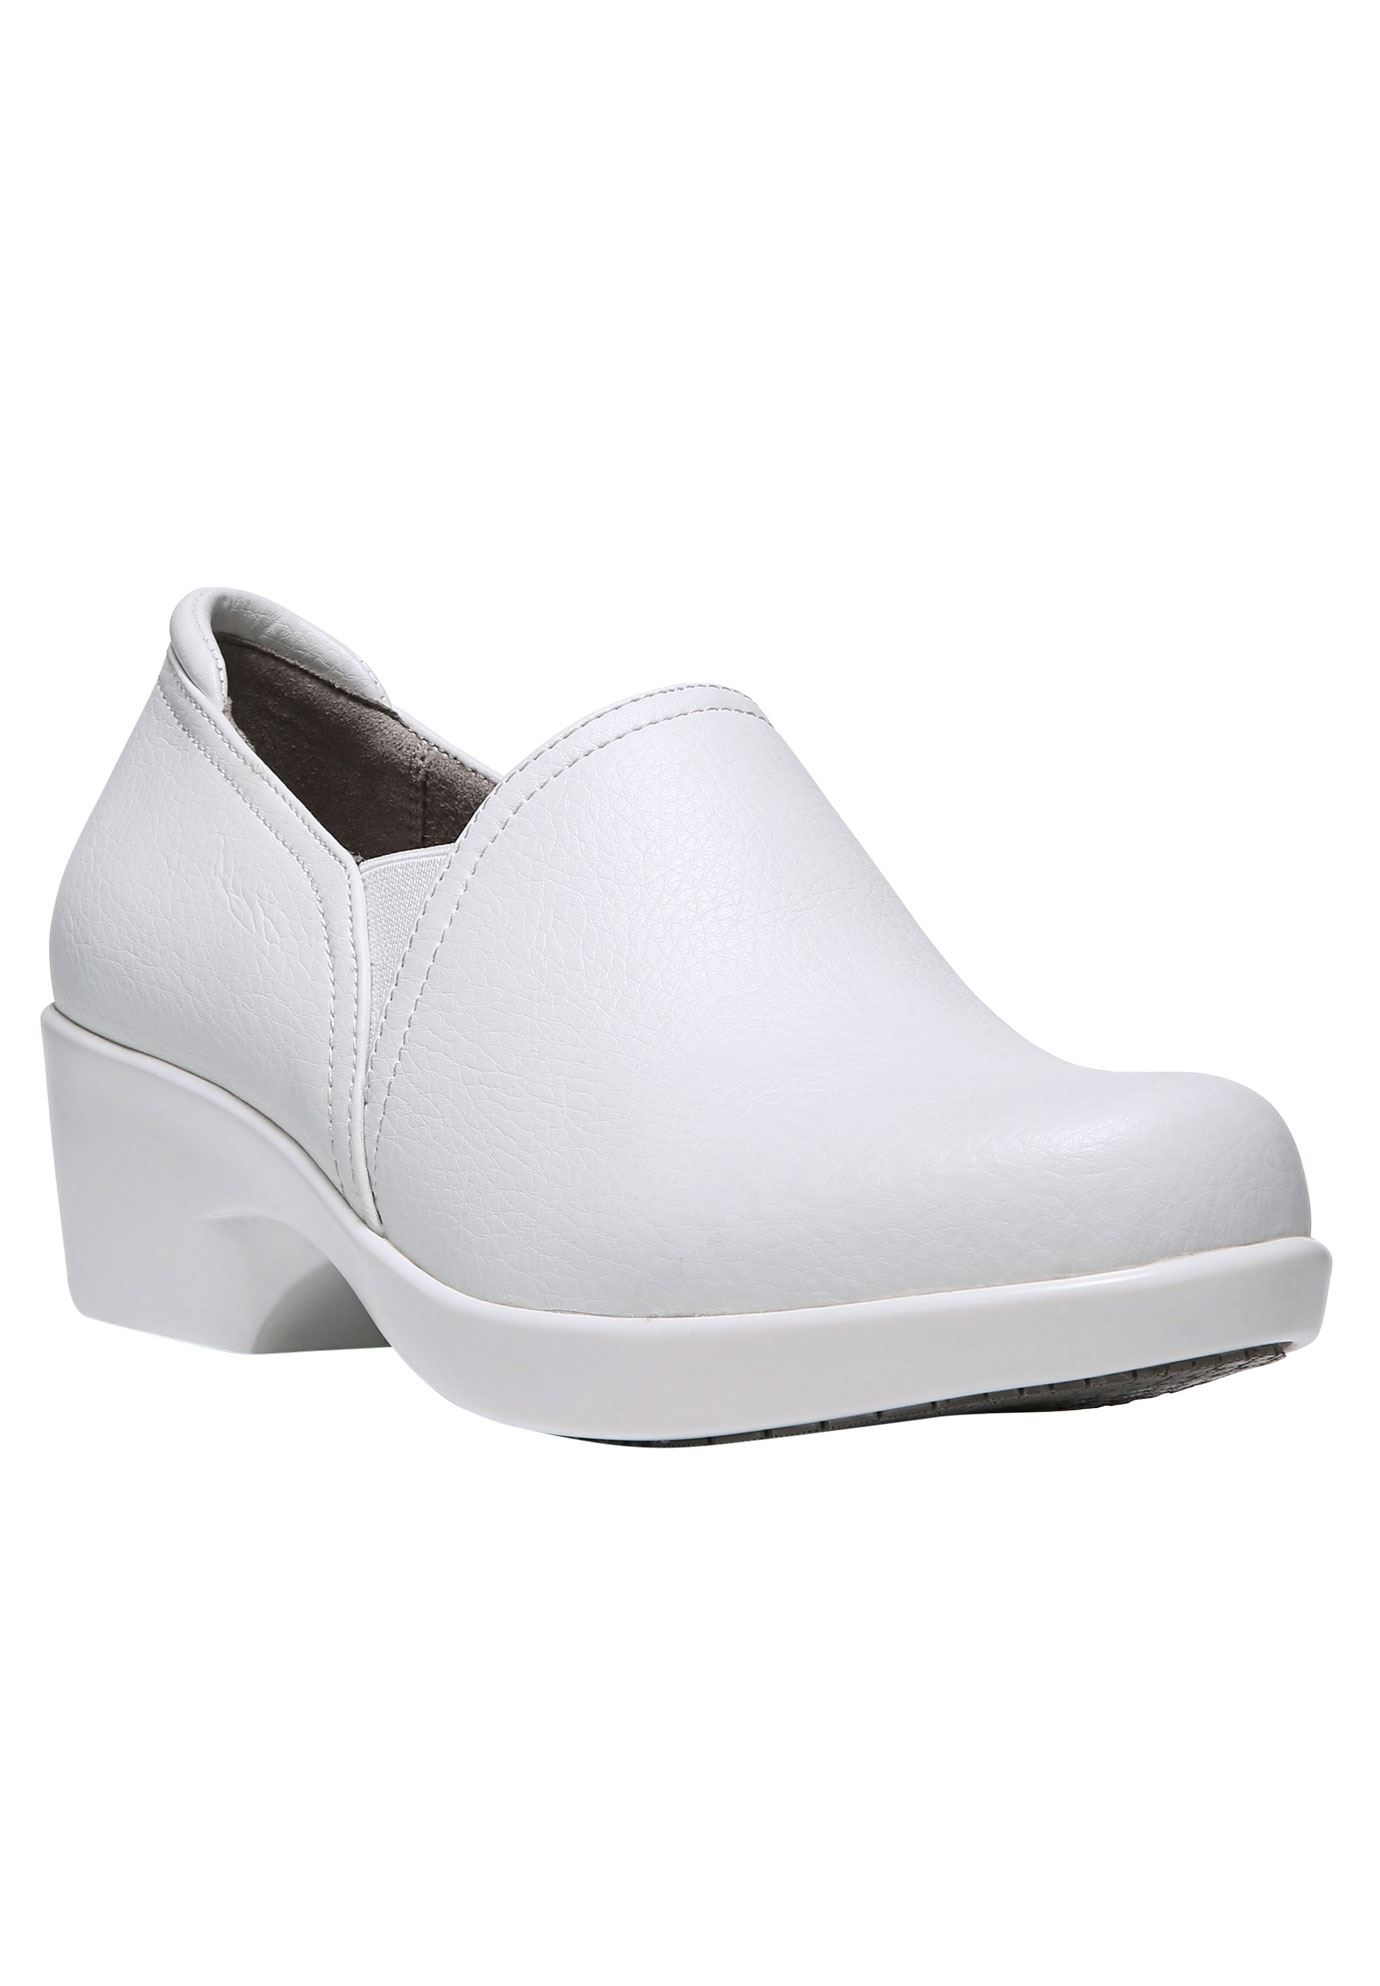 Freeda Dress Shoes by Naturalizer®, WHITE, hi-res